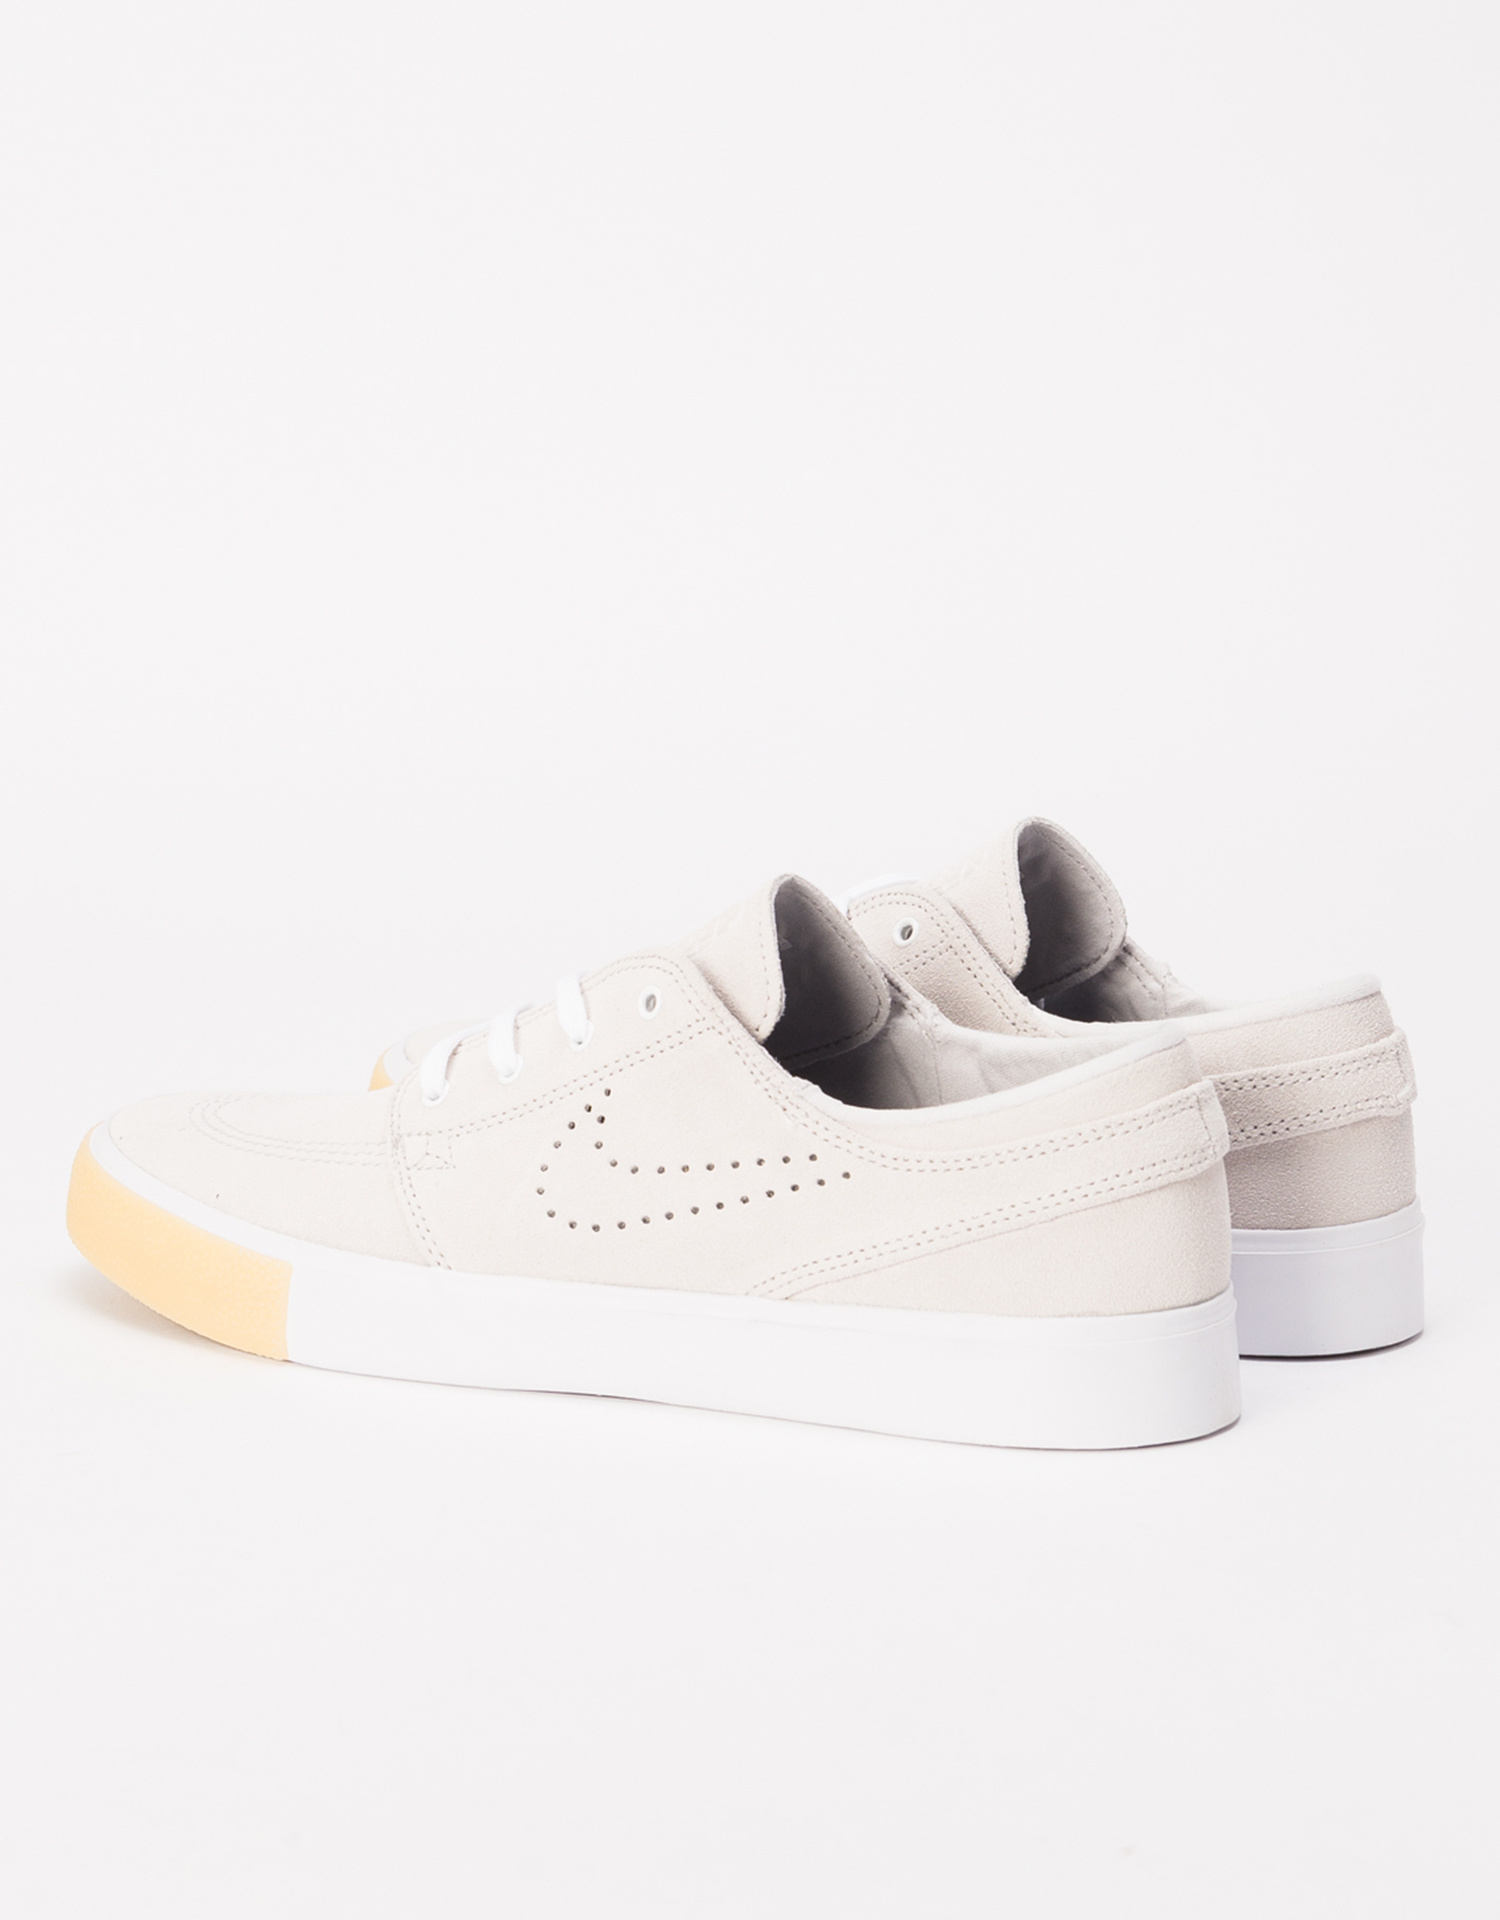 Nike SB Zoom Janoski Rm Se white/white-vast grey-gum yellow